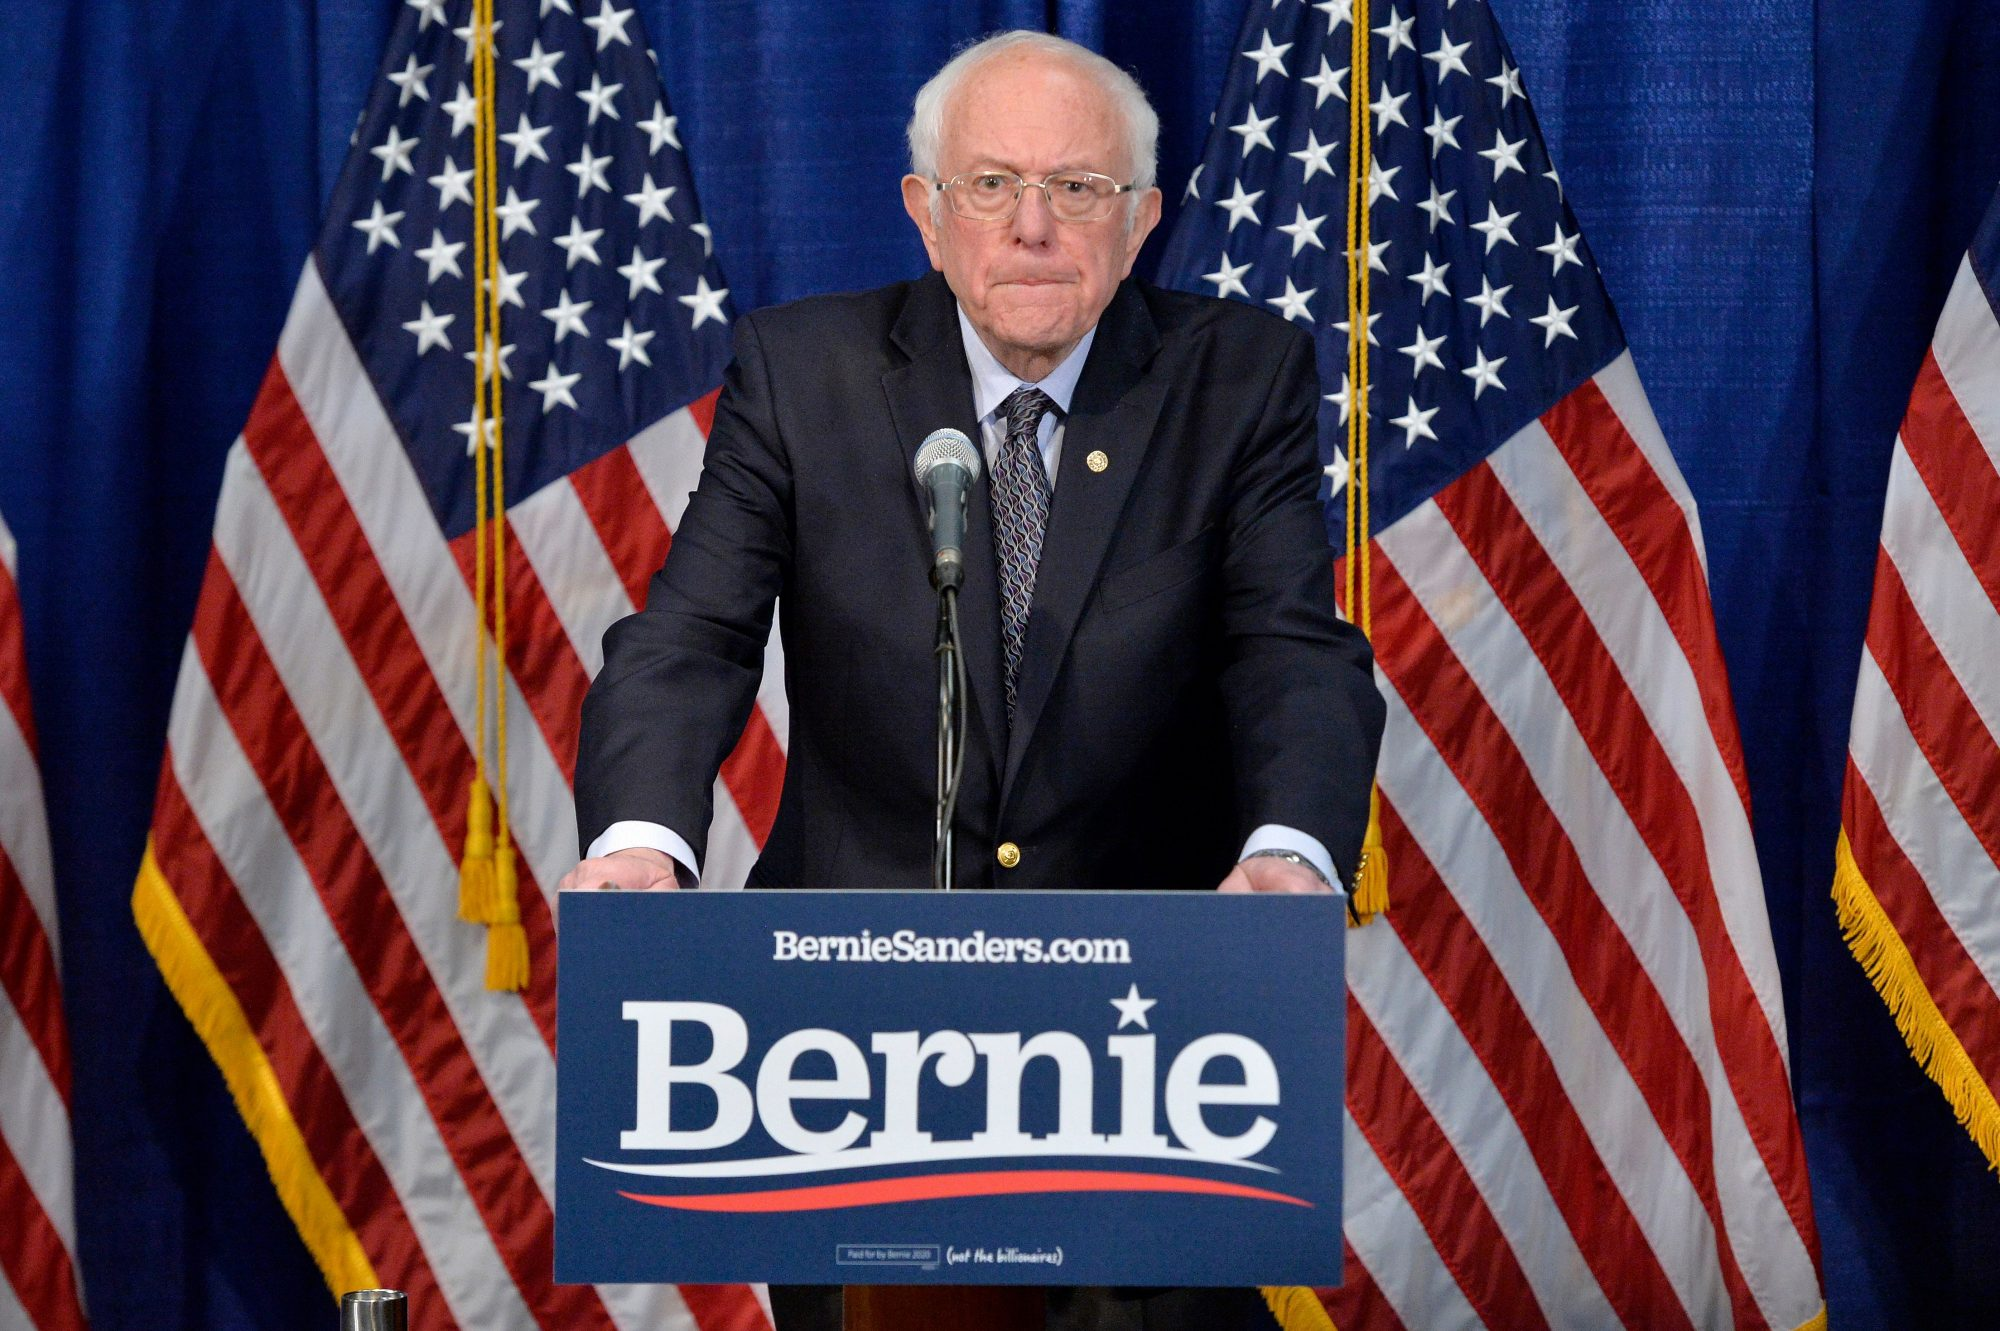 Bernie Sanders Drops Out of Presidential Race